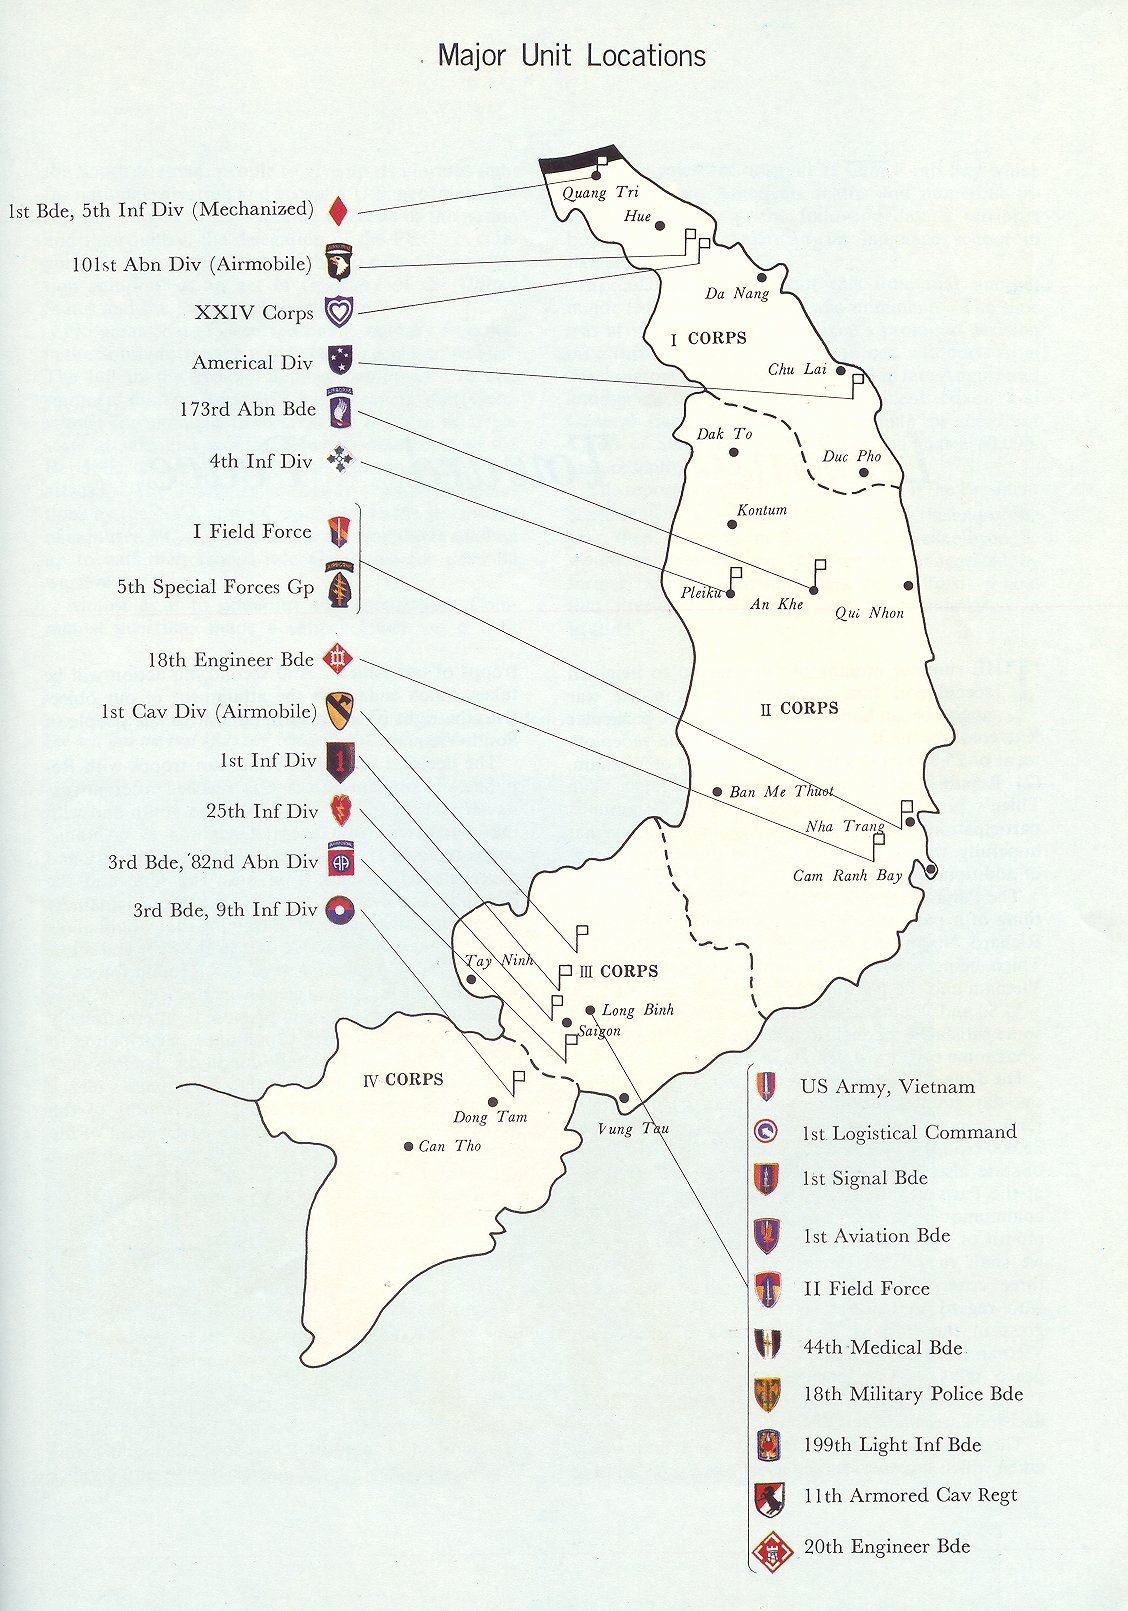 1969 Map Military of Vietnam | Major Units Locations - 1969